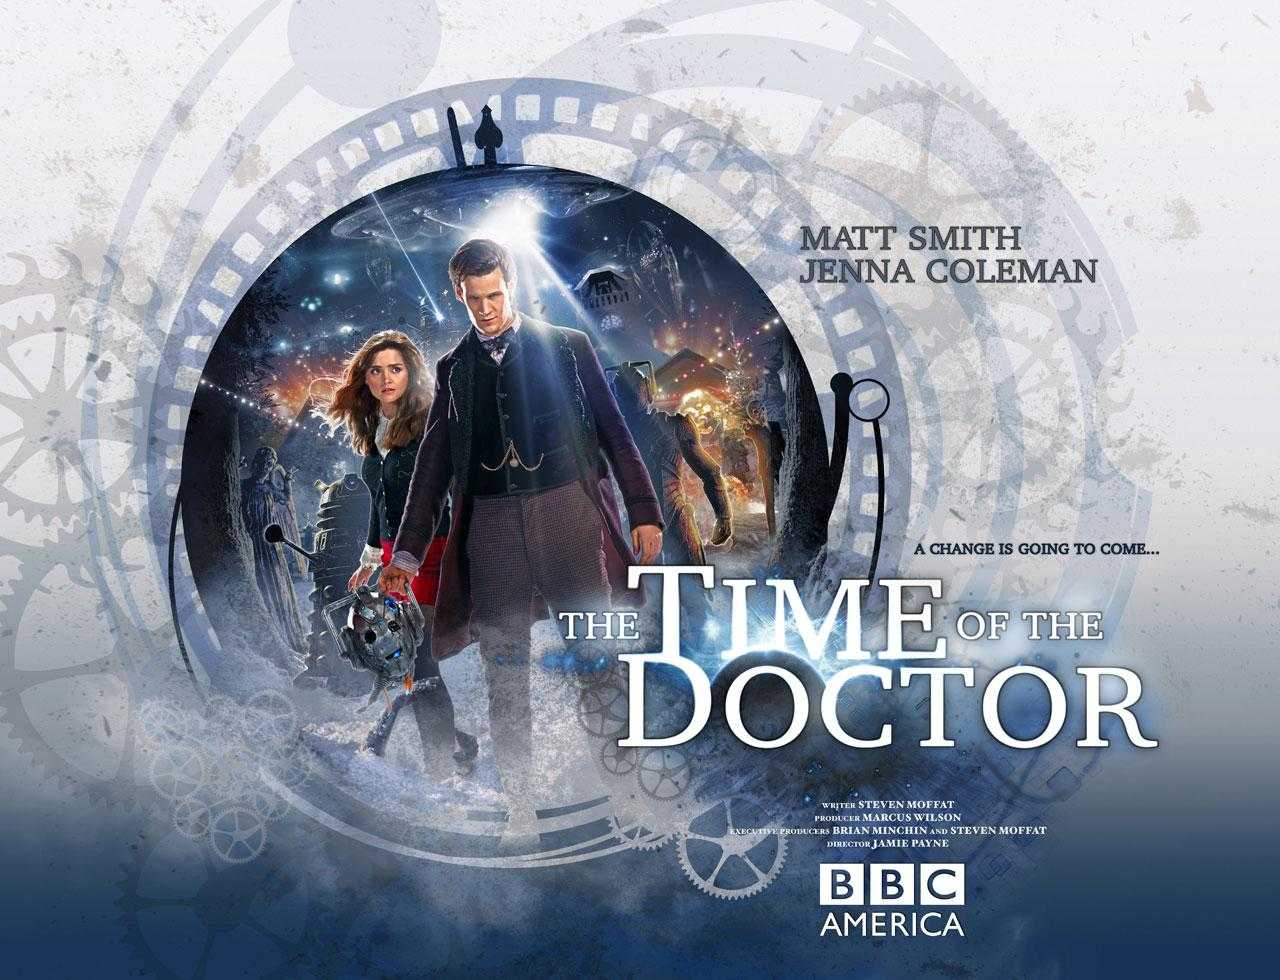 The Doctor Is Given A Special Christmas Invitation In Latest